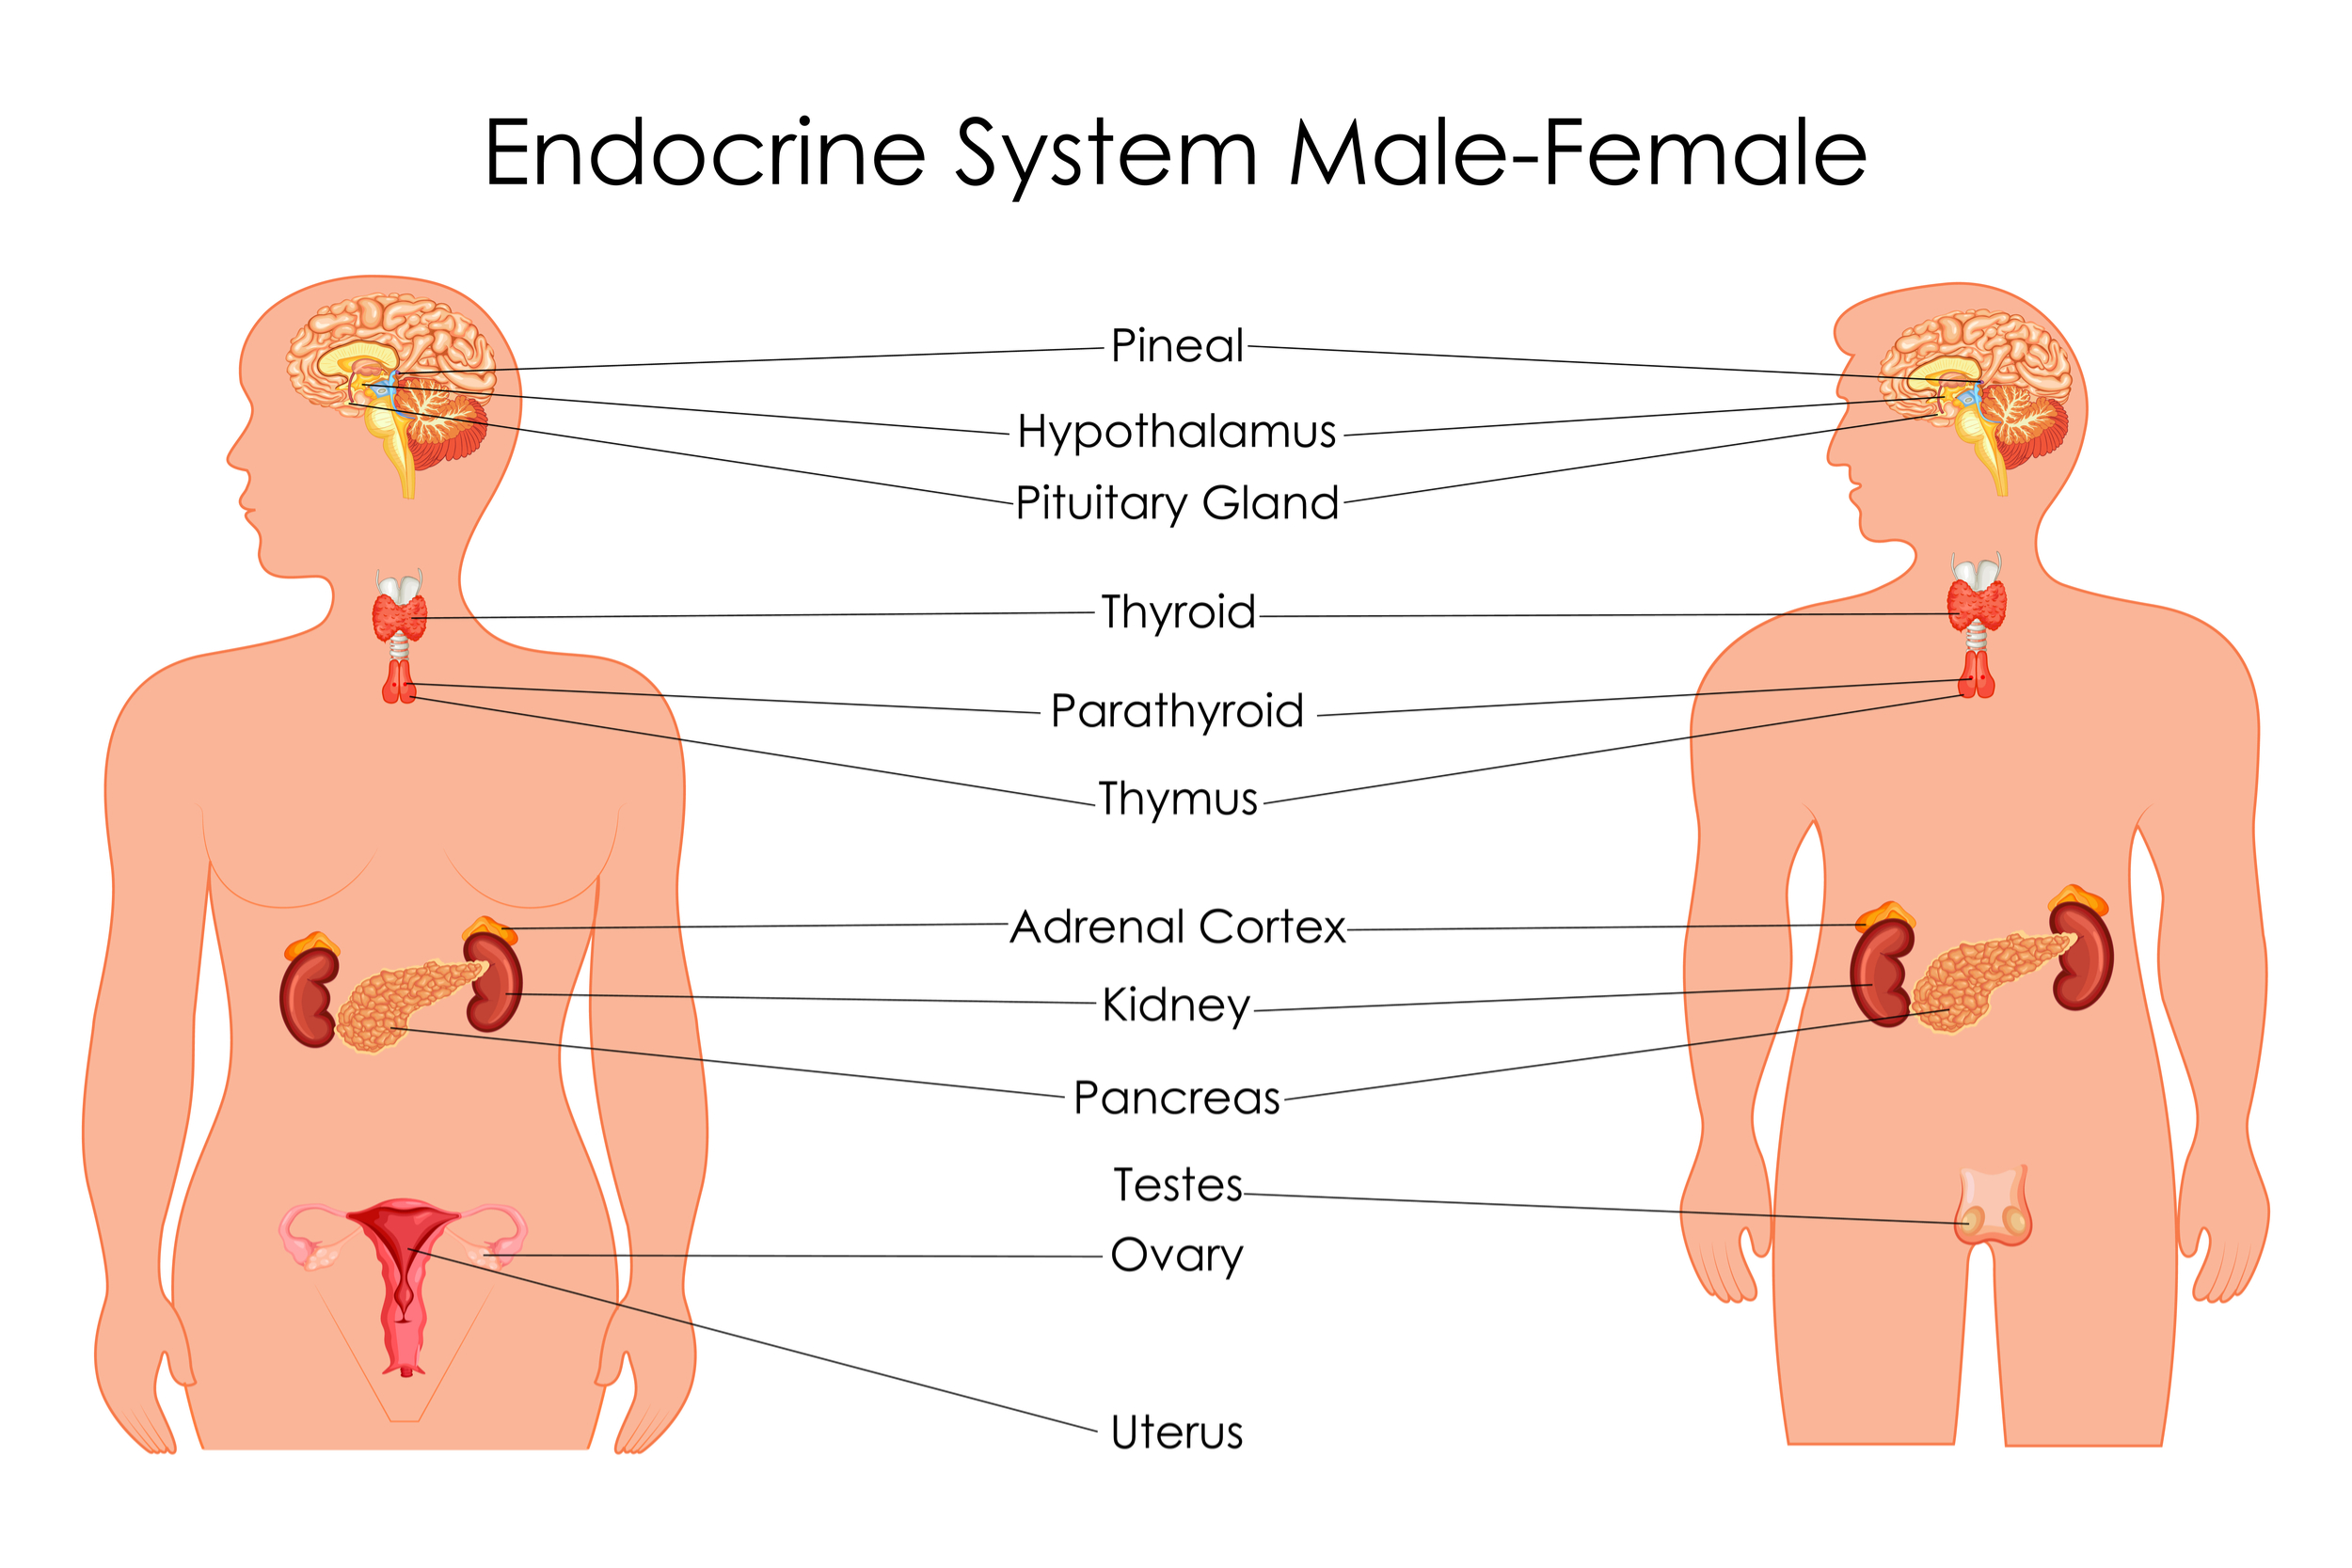 physiotherapy images for presentations endocrine system sydney clinics physiotherapists